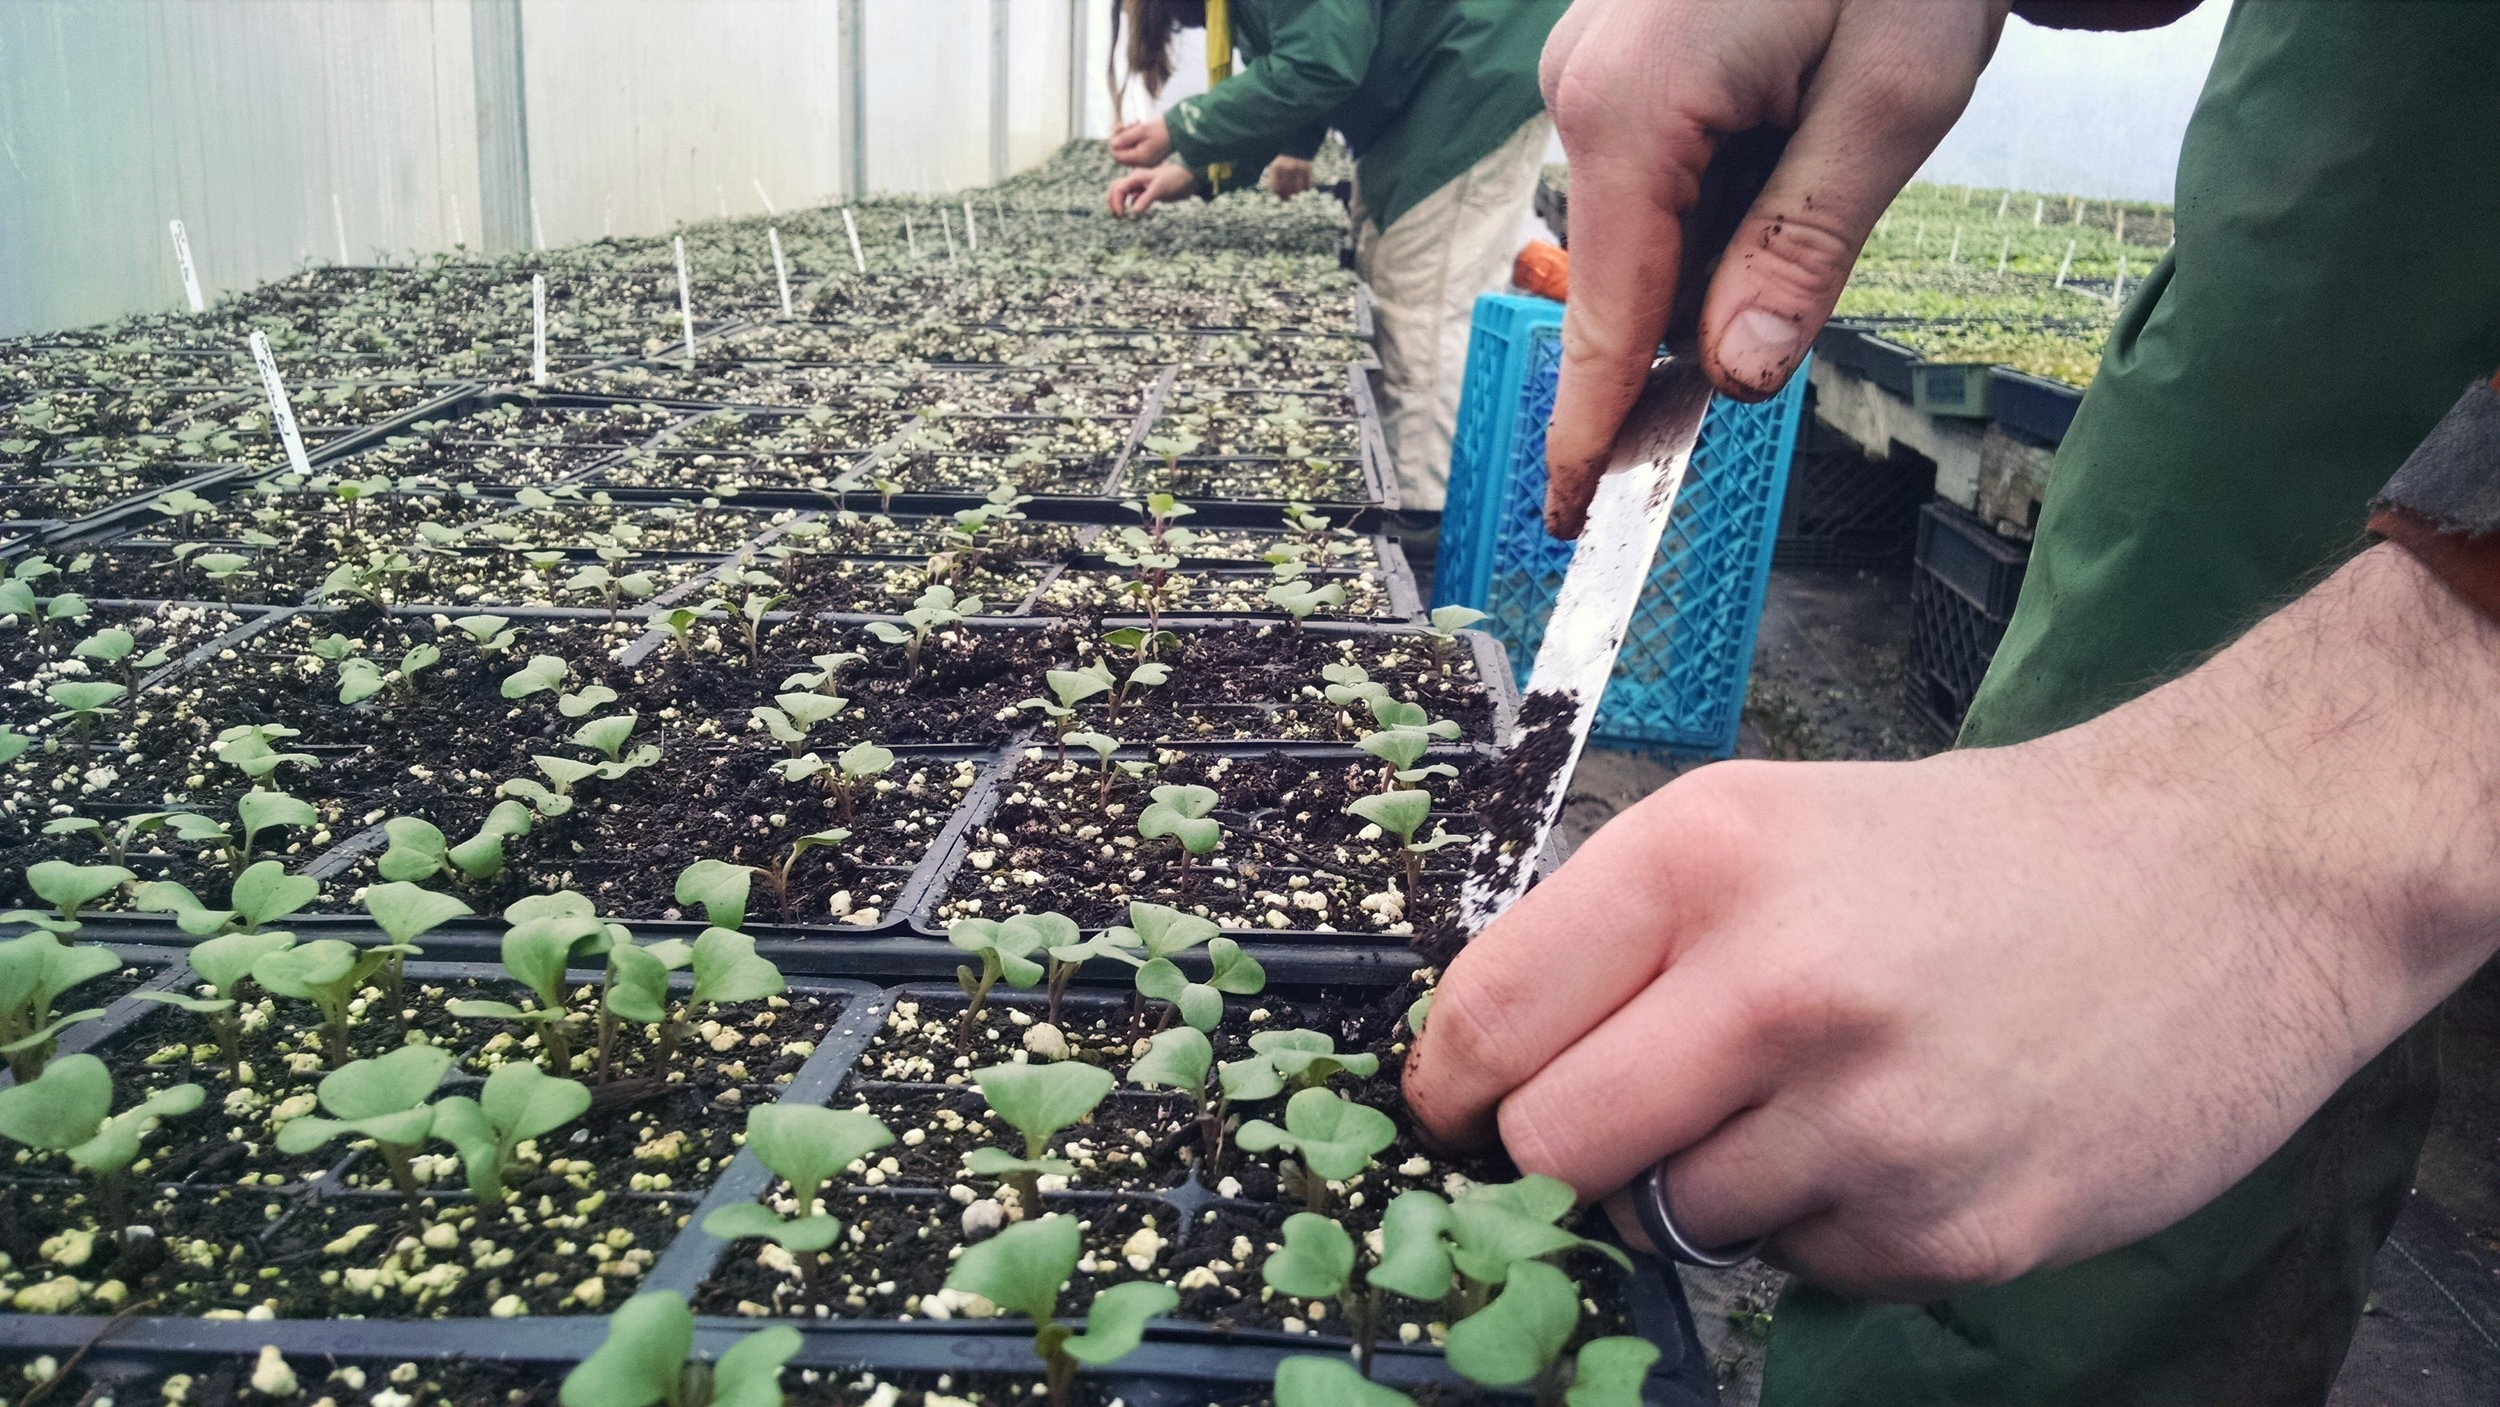 Phil working to fill in plant sale trays